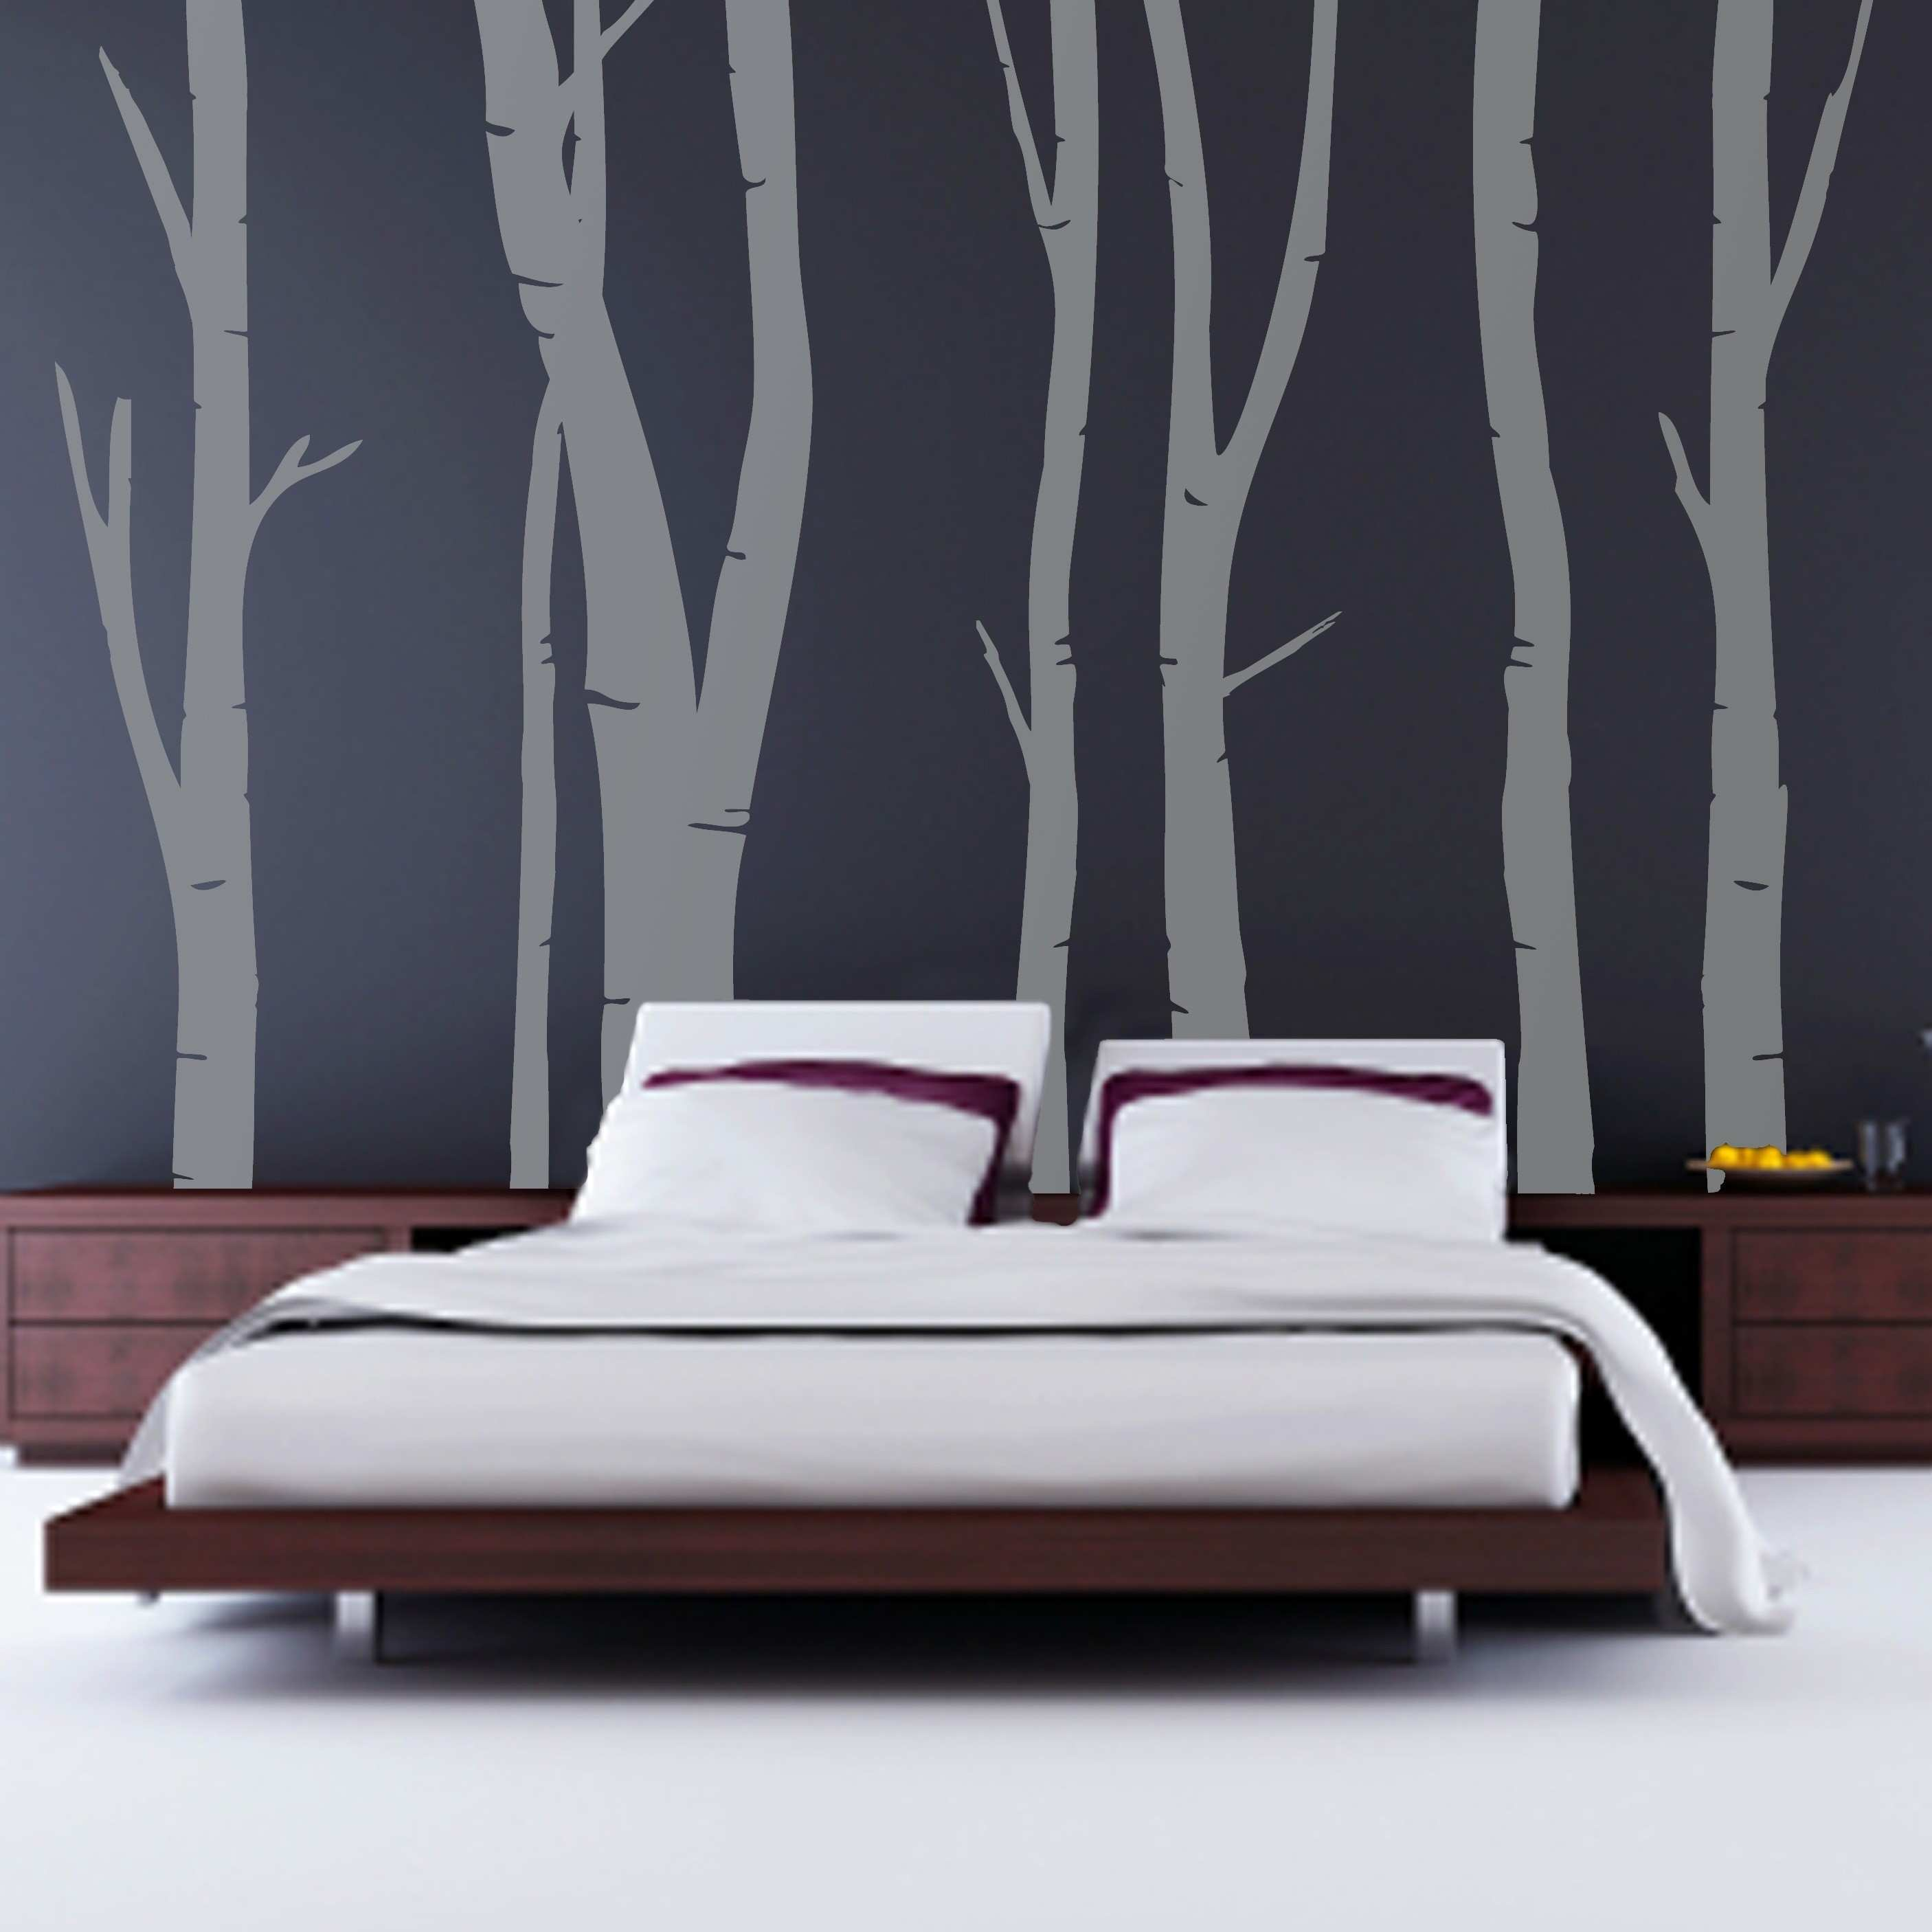 Wall Stickers Decor for Babies Best Wall Decals for Bedroom